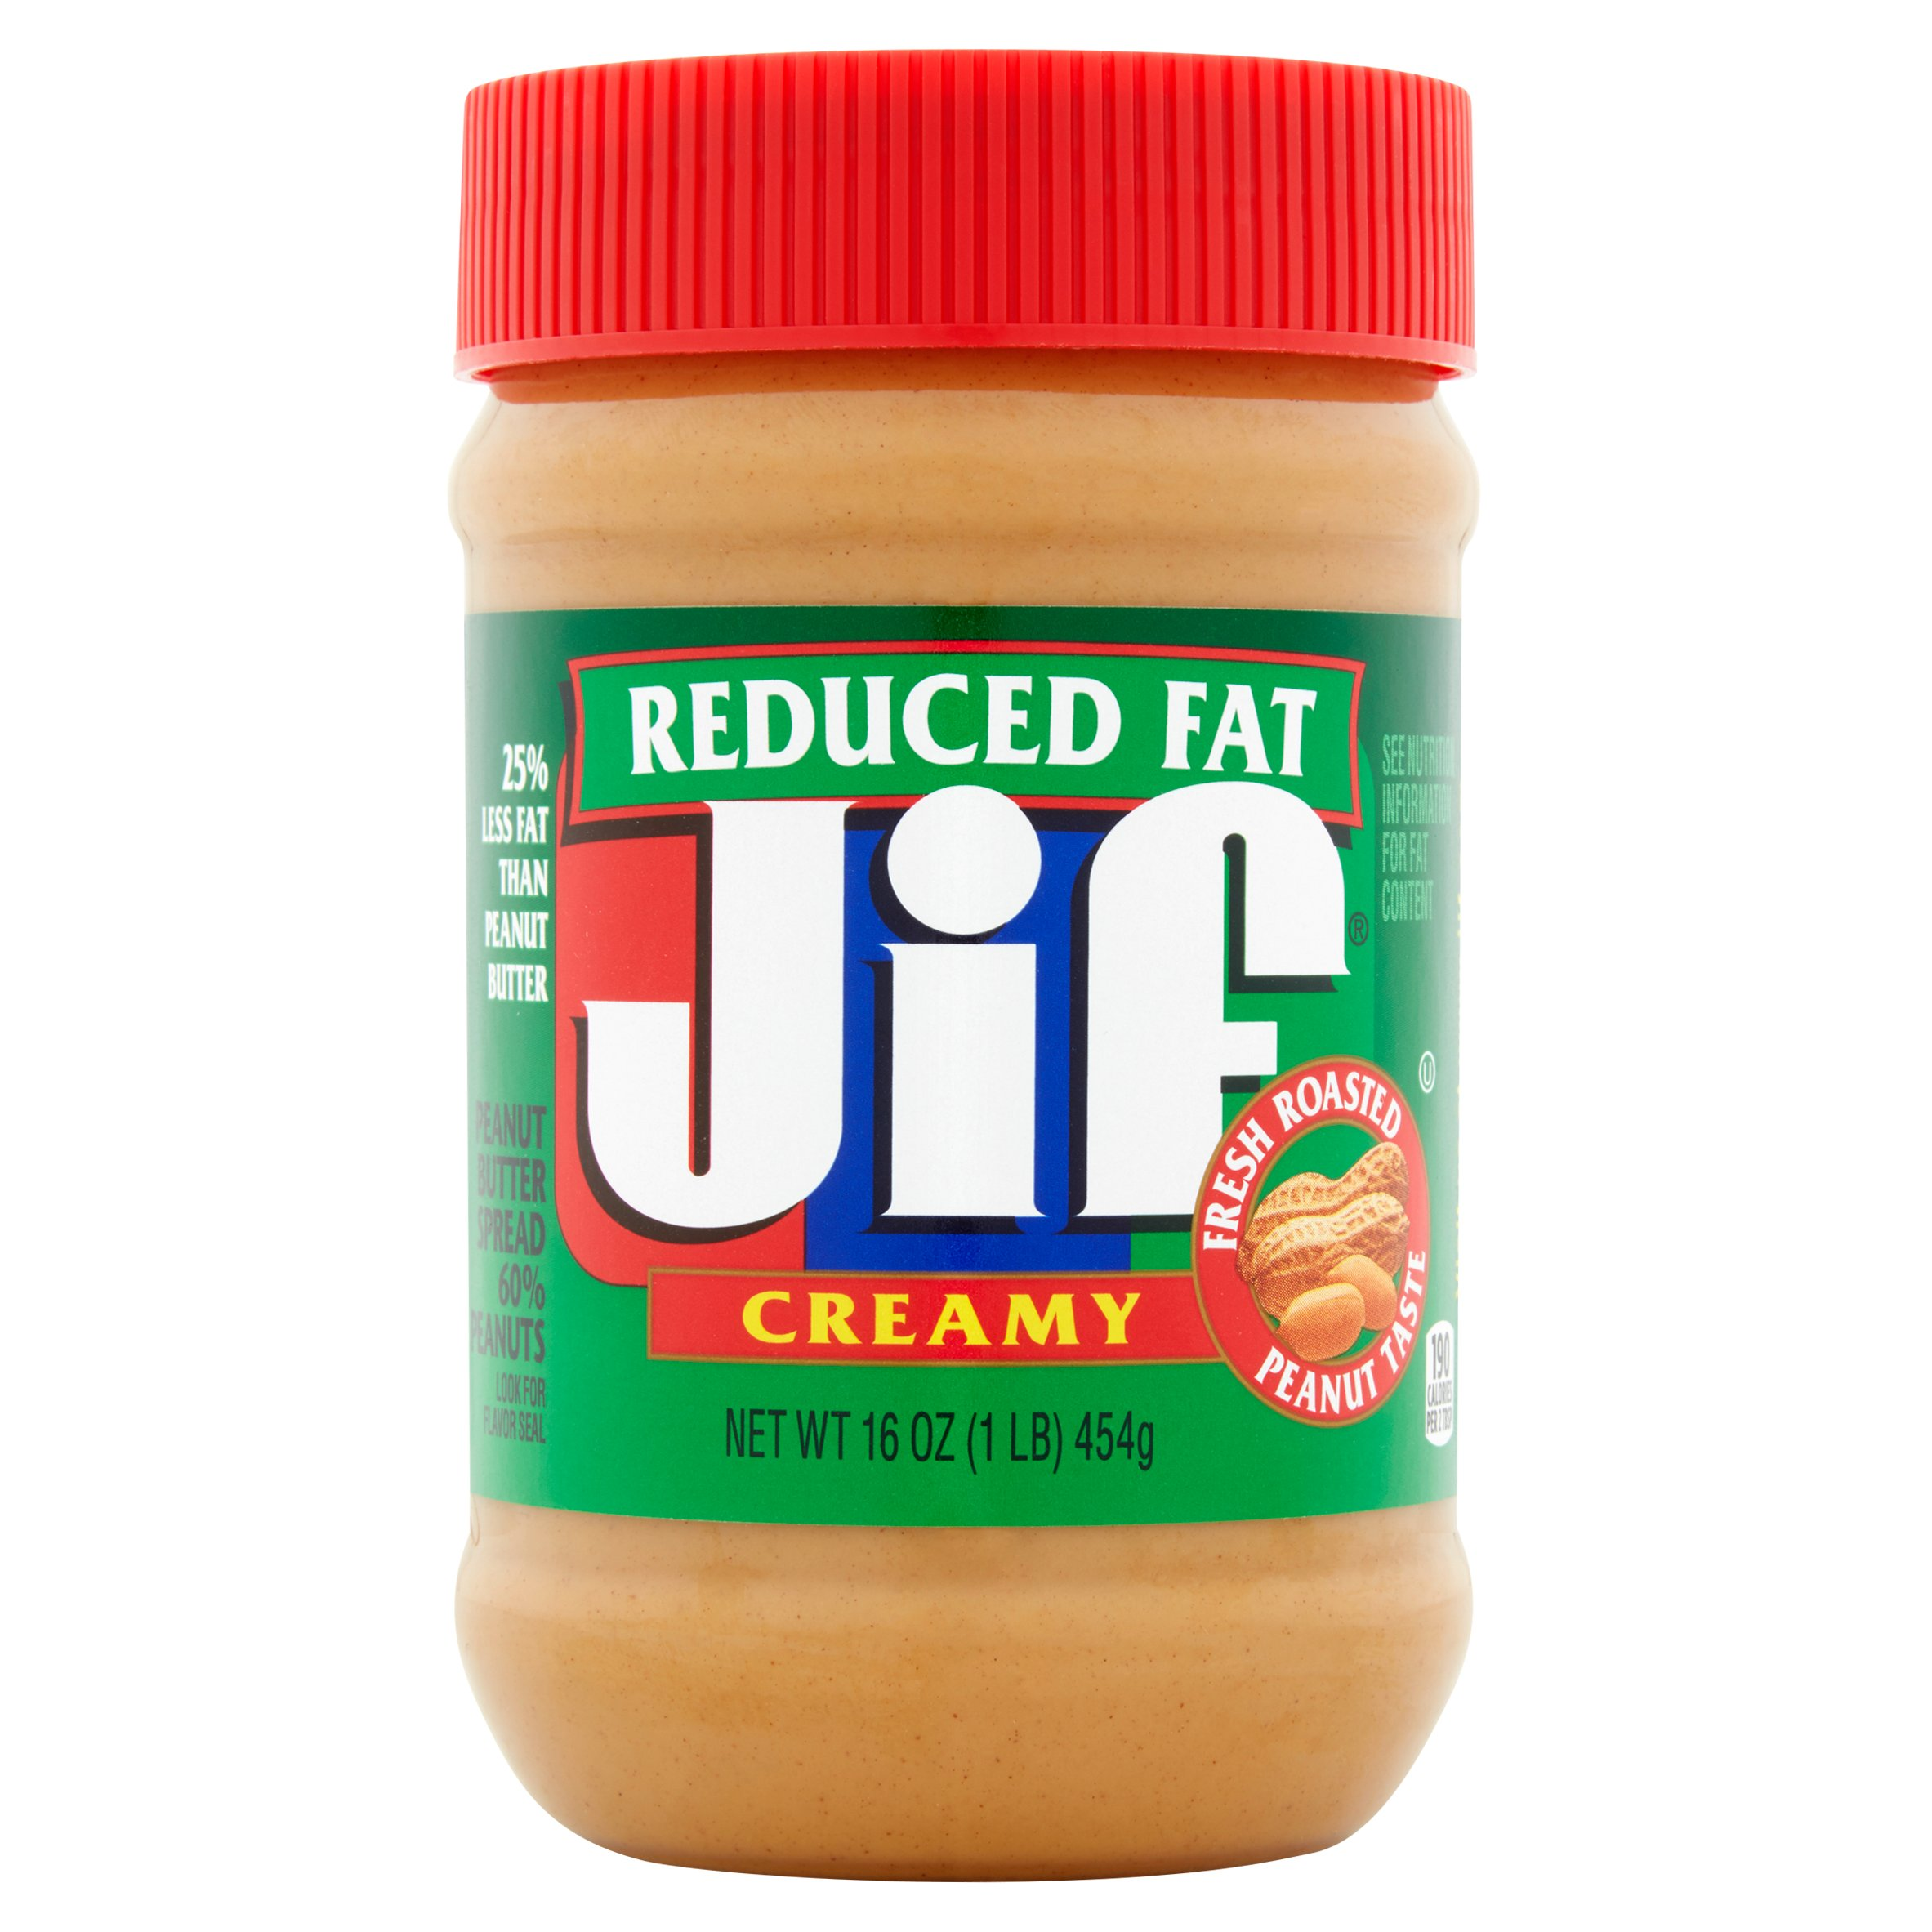 Jif Reduced Fat Creamy Peanut Butter Spread, 16 oz